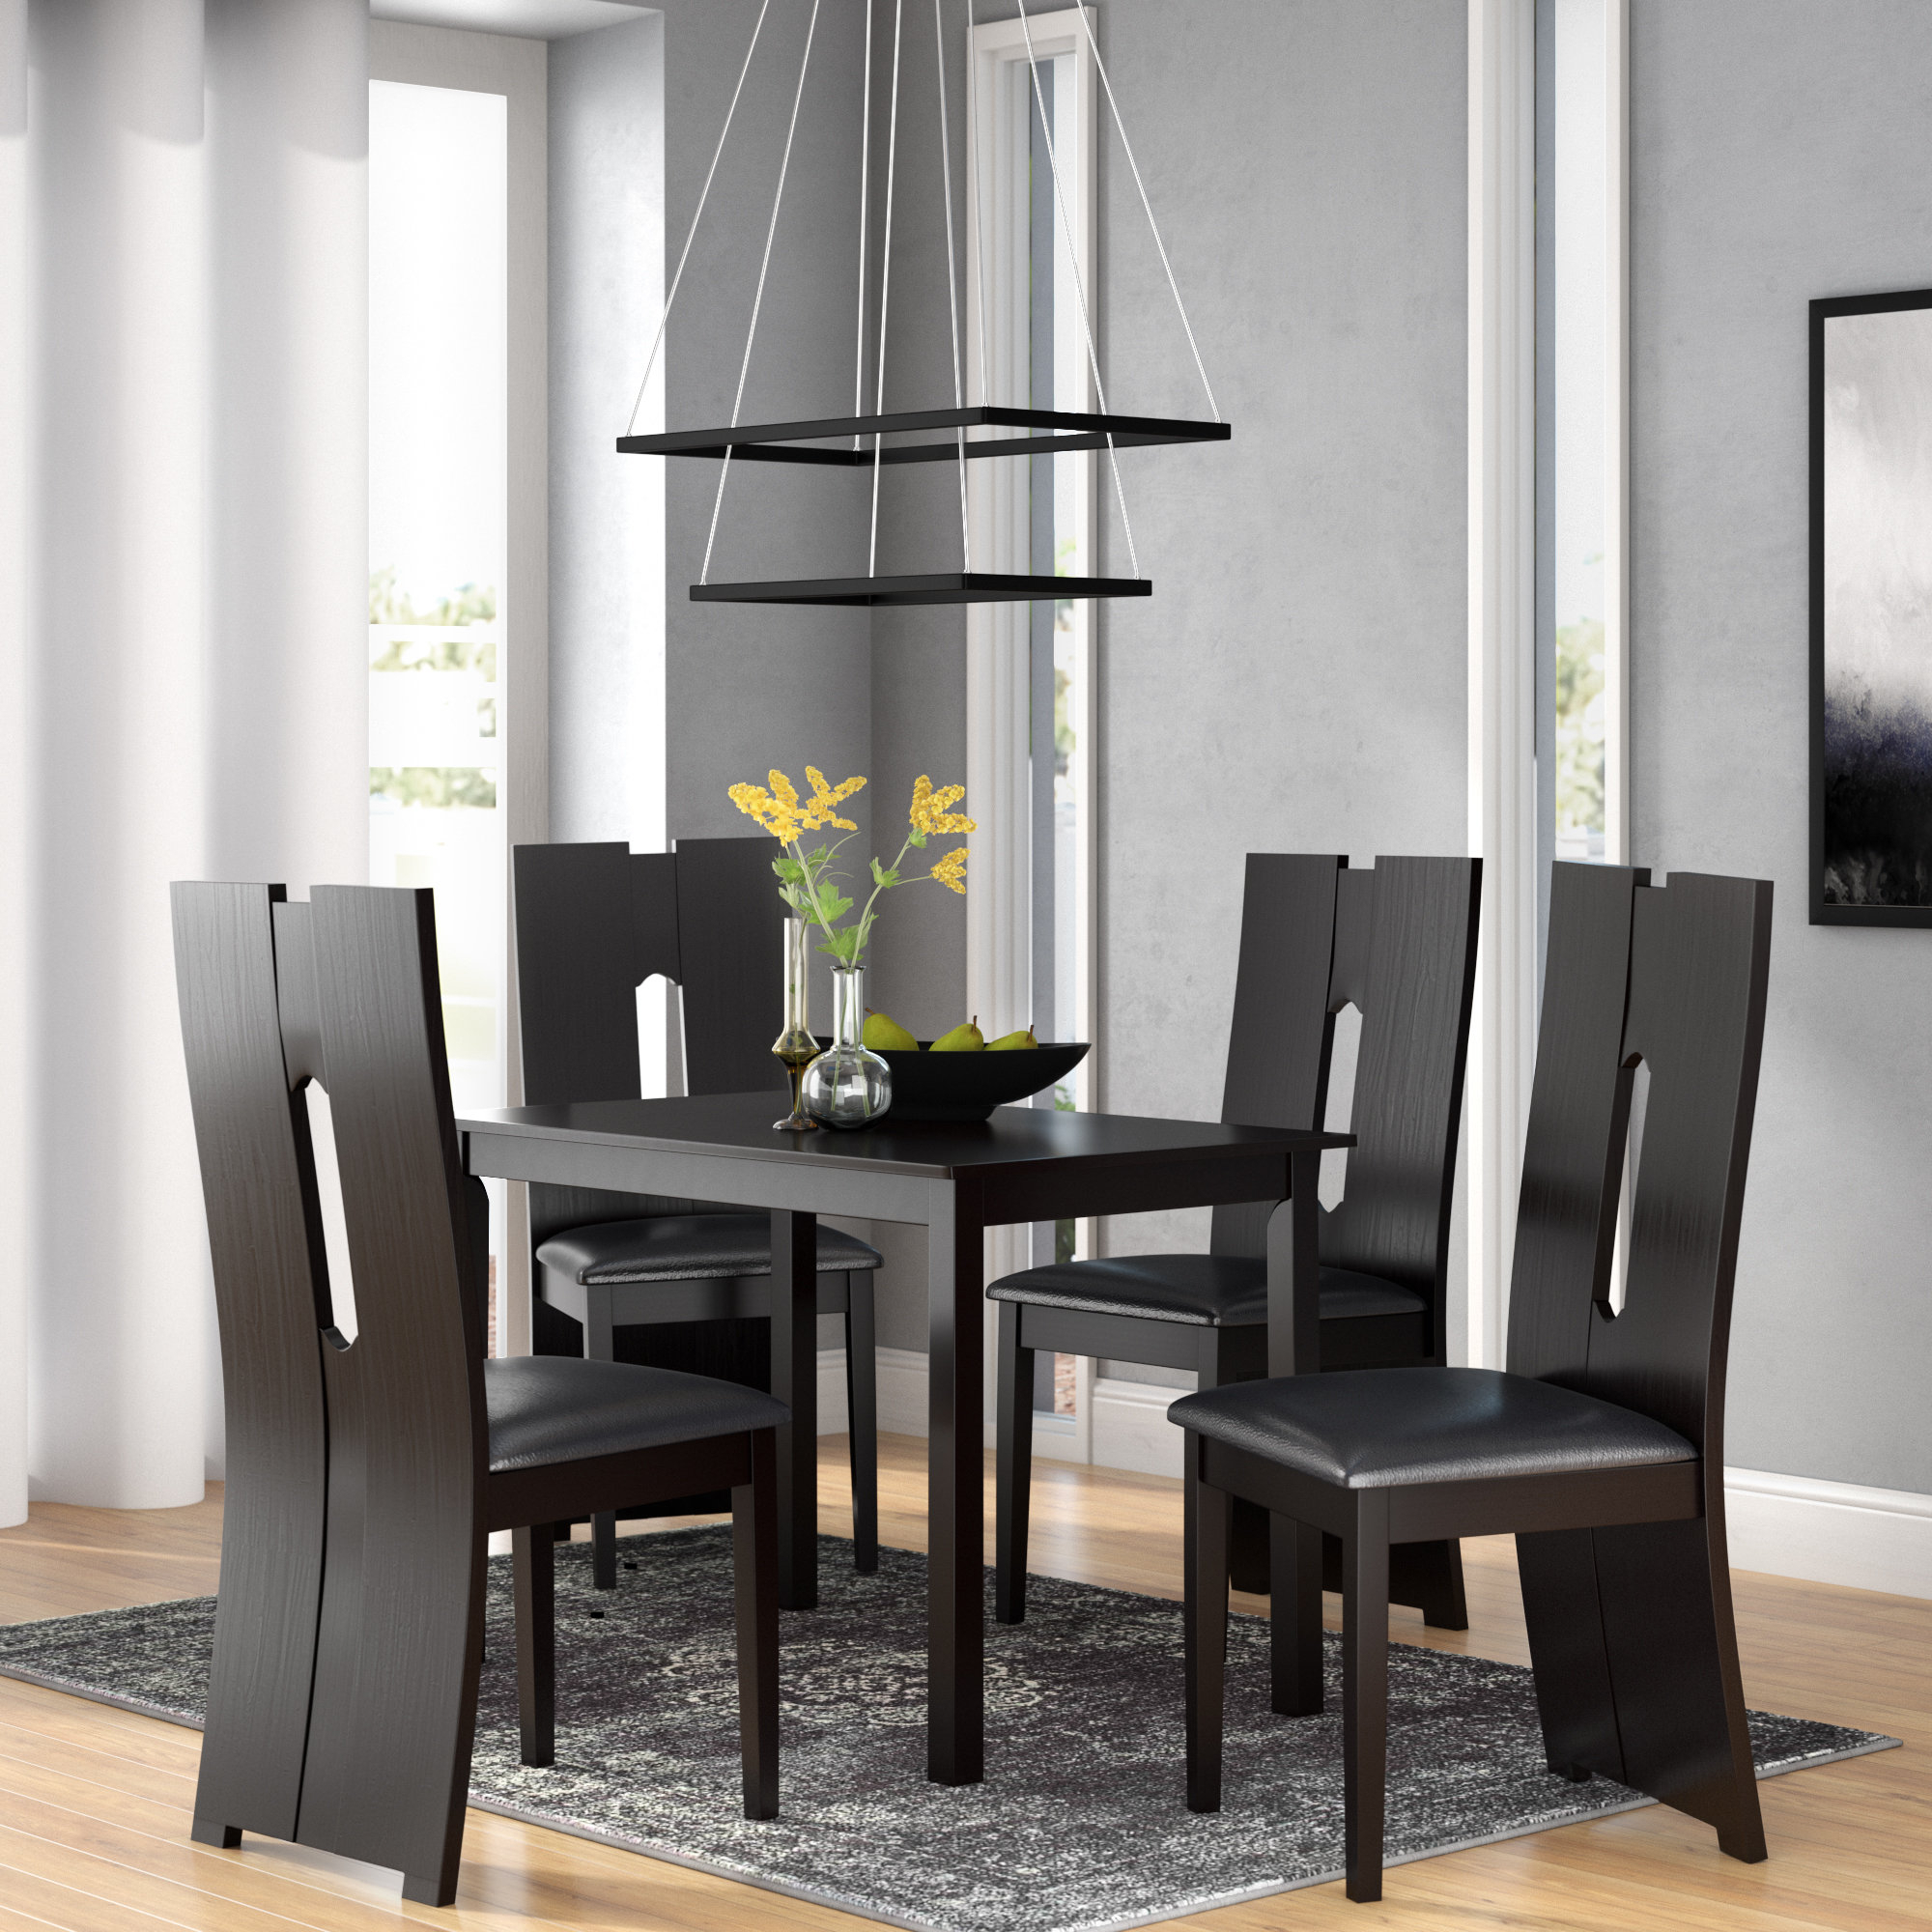 5 Piece Breakfast Nook Dining Sets Pertaining To 2017 Onsted Modern And Contemporary 5 Piece Breakfast Nook Dining Set (Gallery 15 of 20)